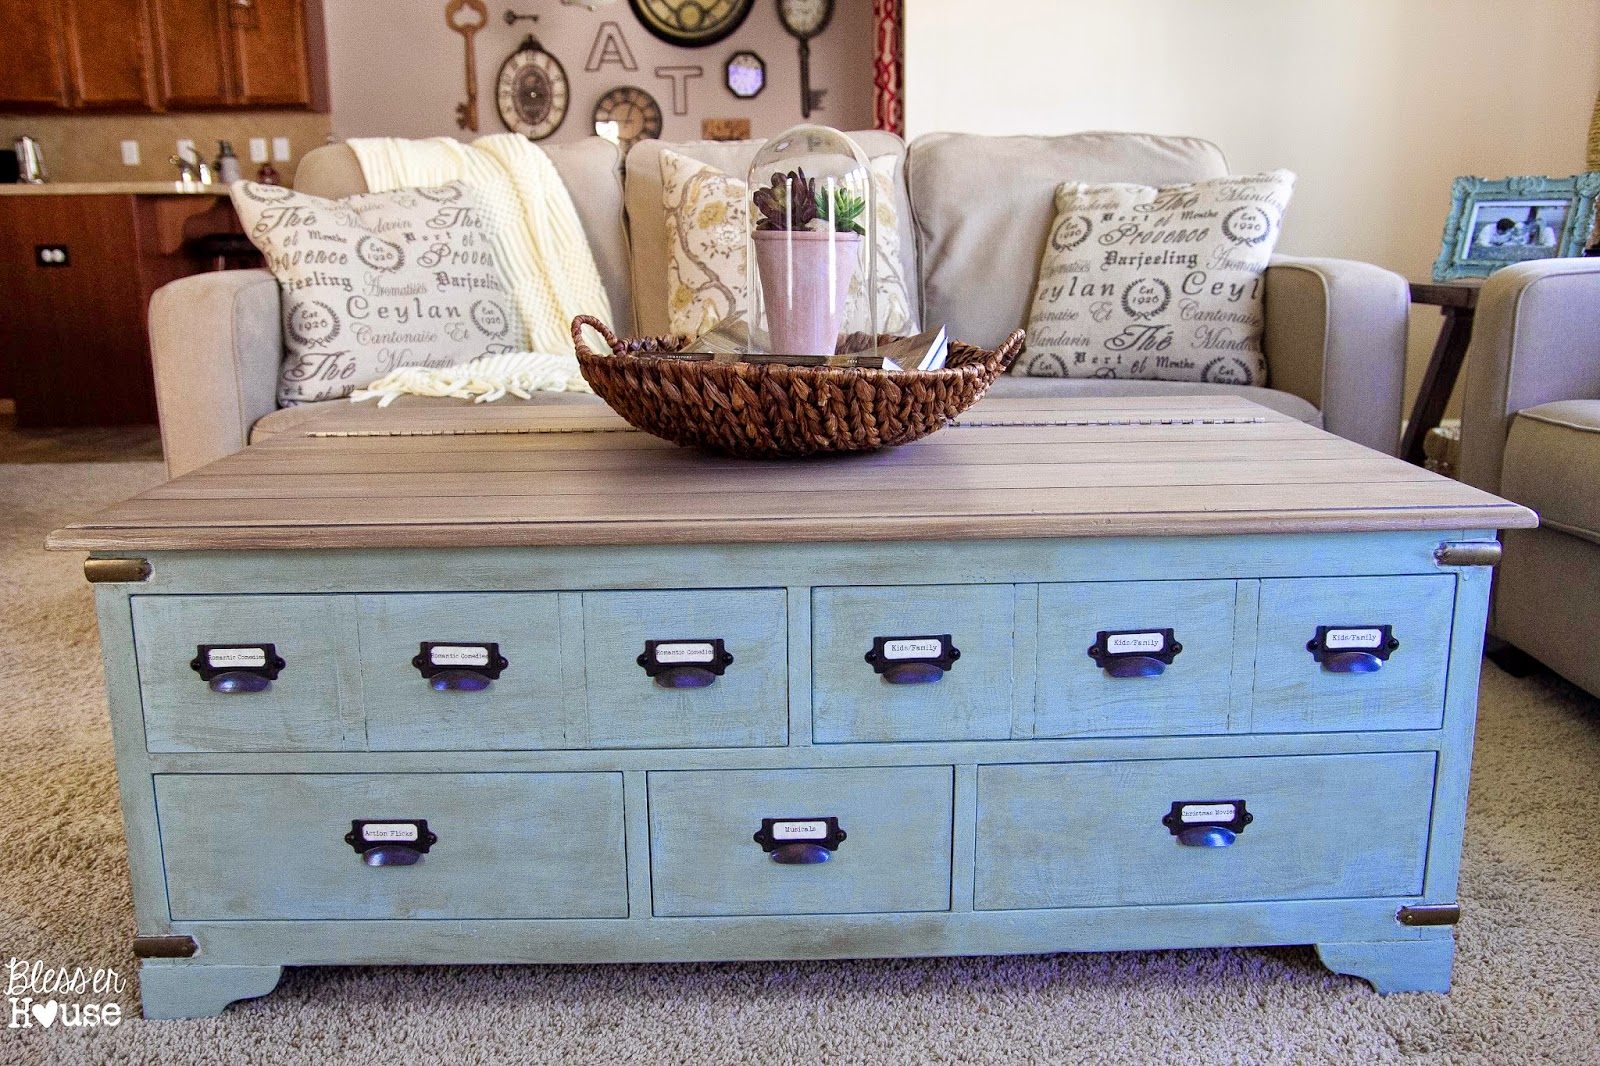 Faux Planked Card Catalog Coffee Table from Bless'er House